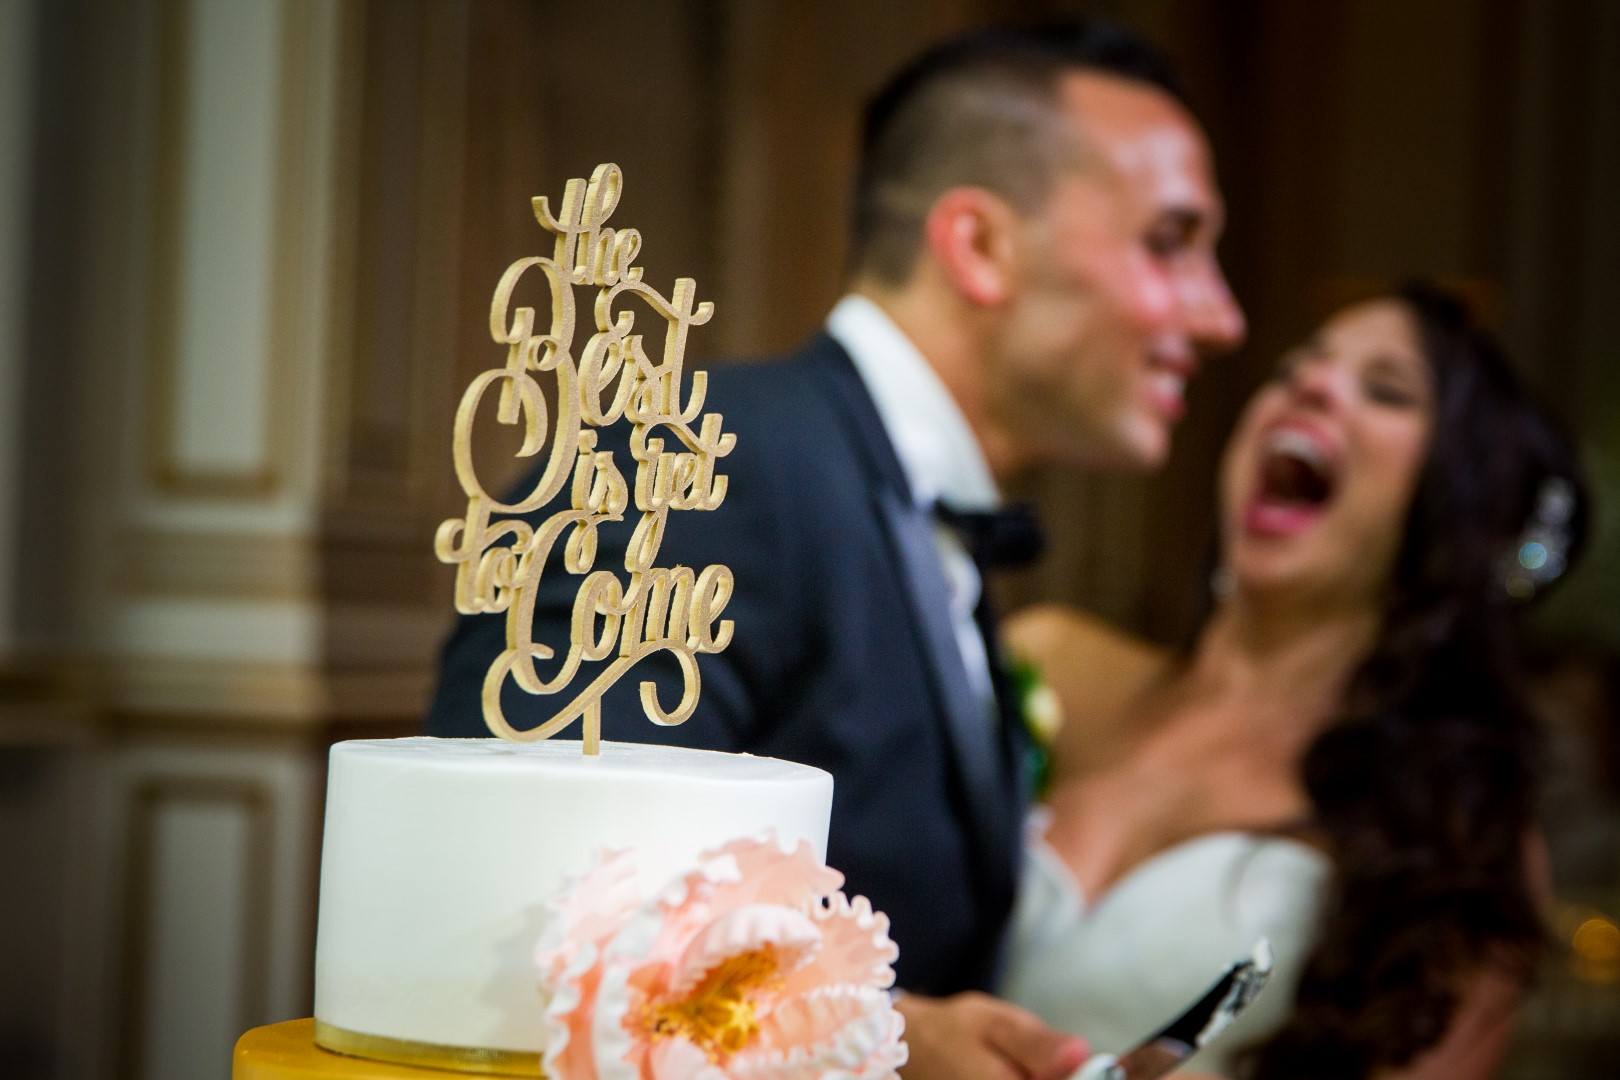 Learn More About The Wedding Cake: In a Flash